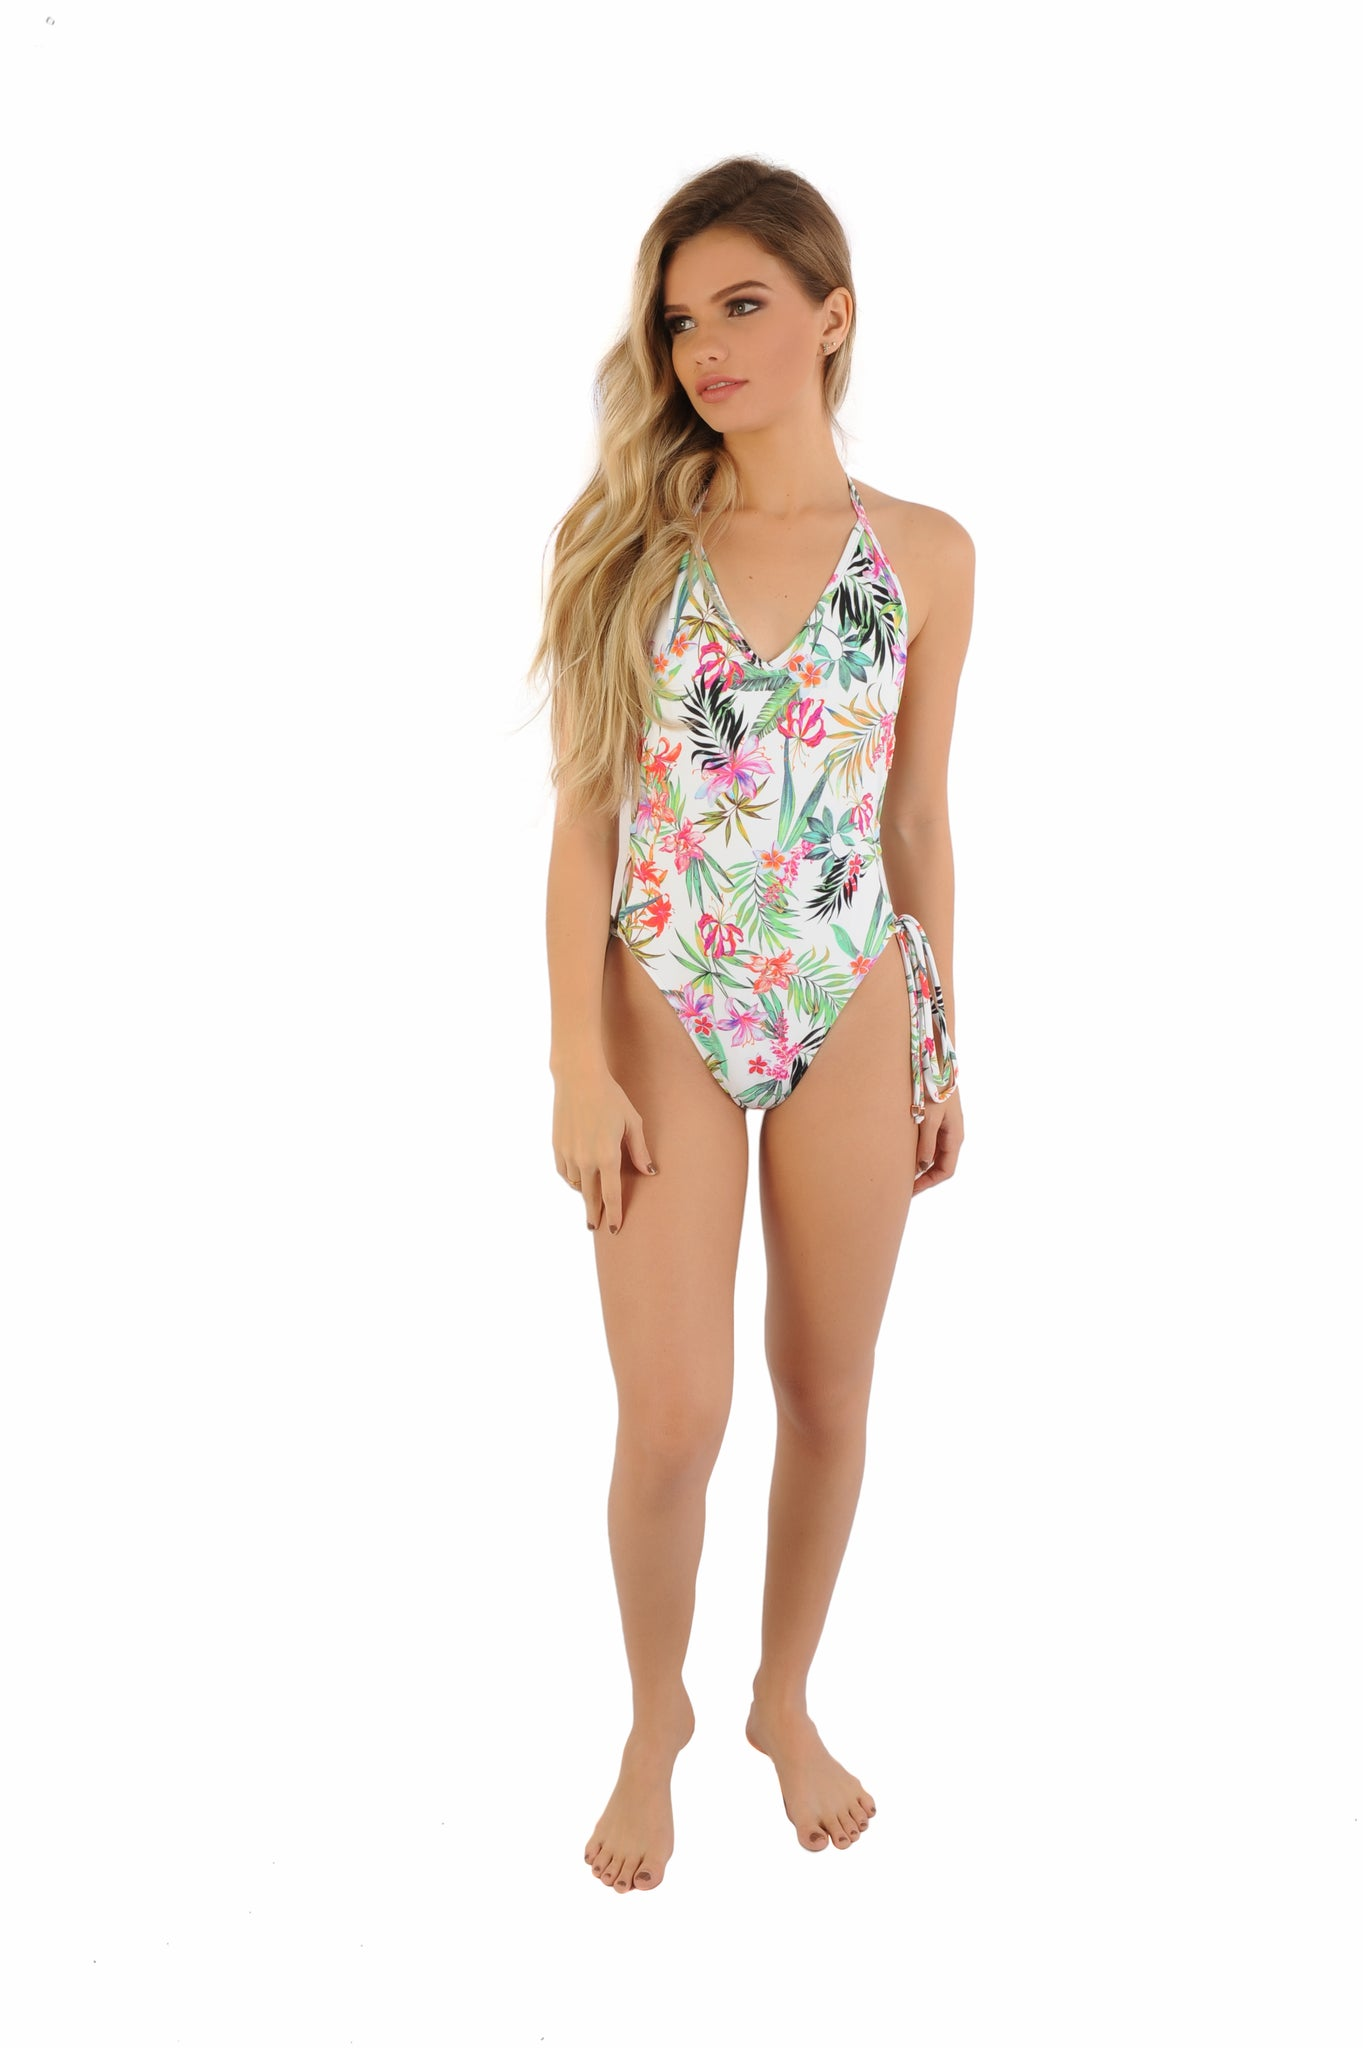 Tropicana - Lace Up One Piece Swimsuit